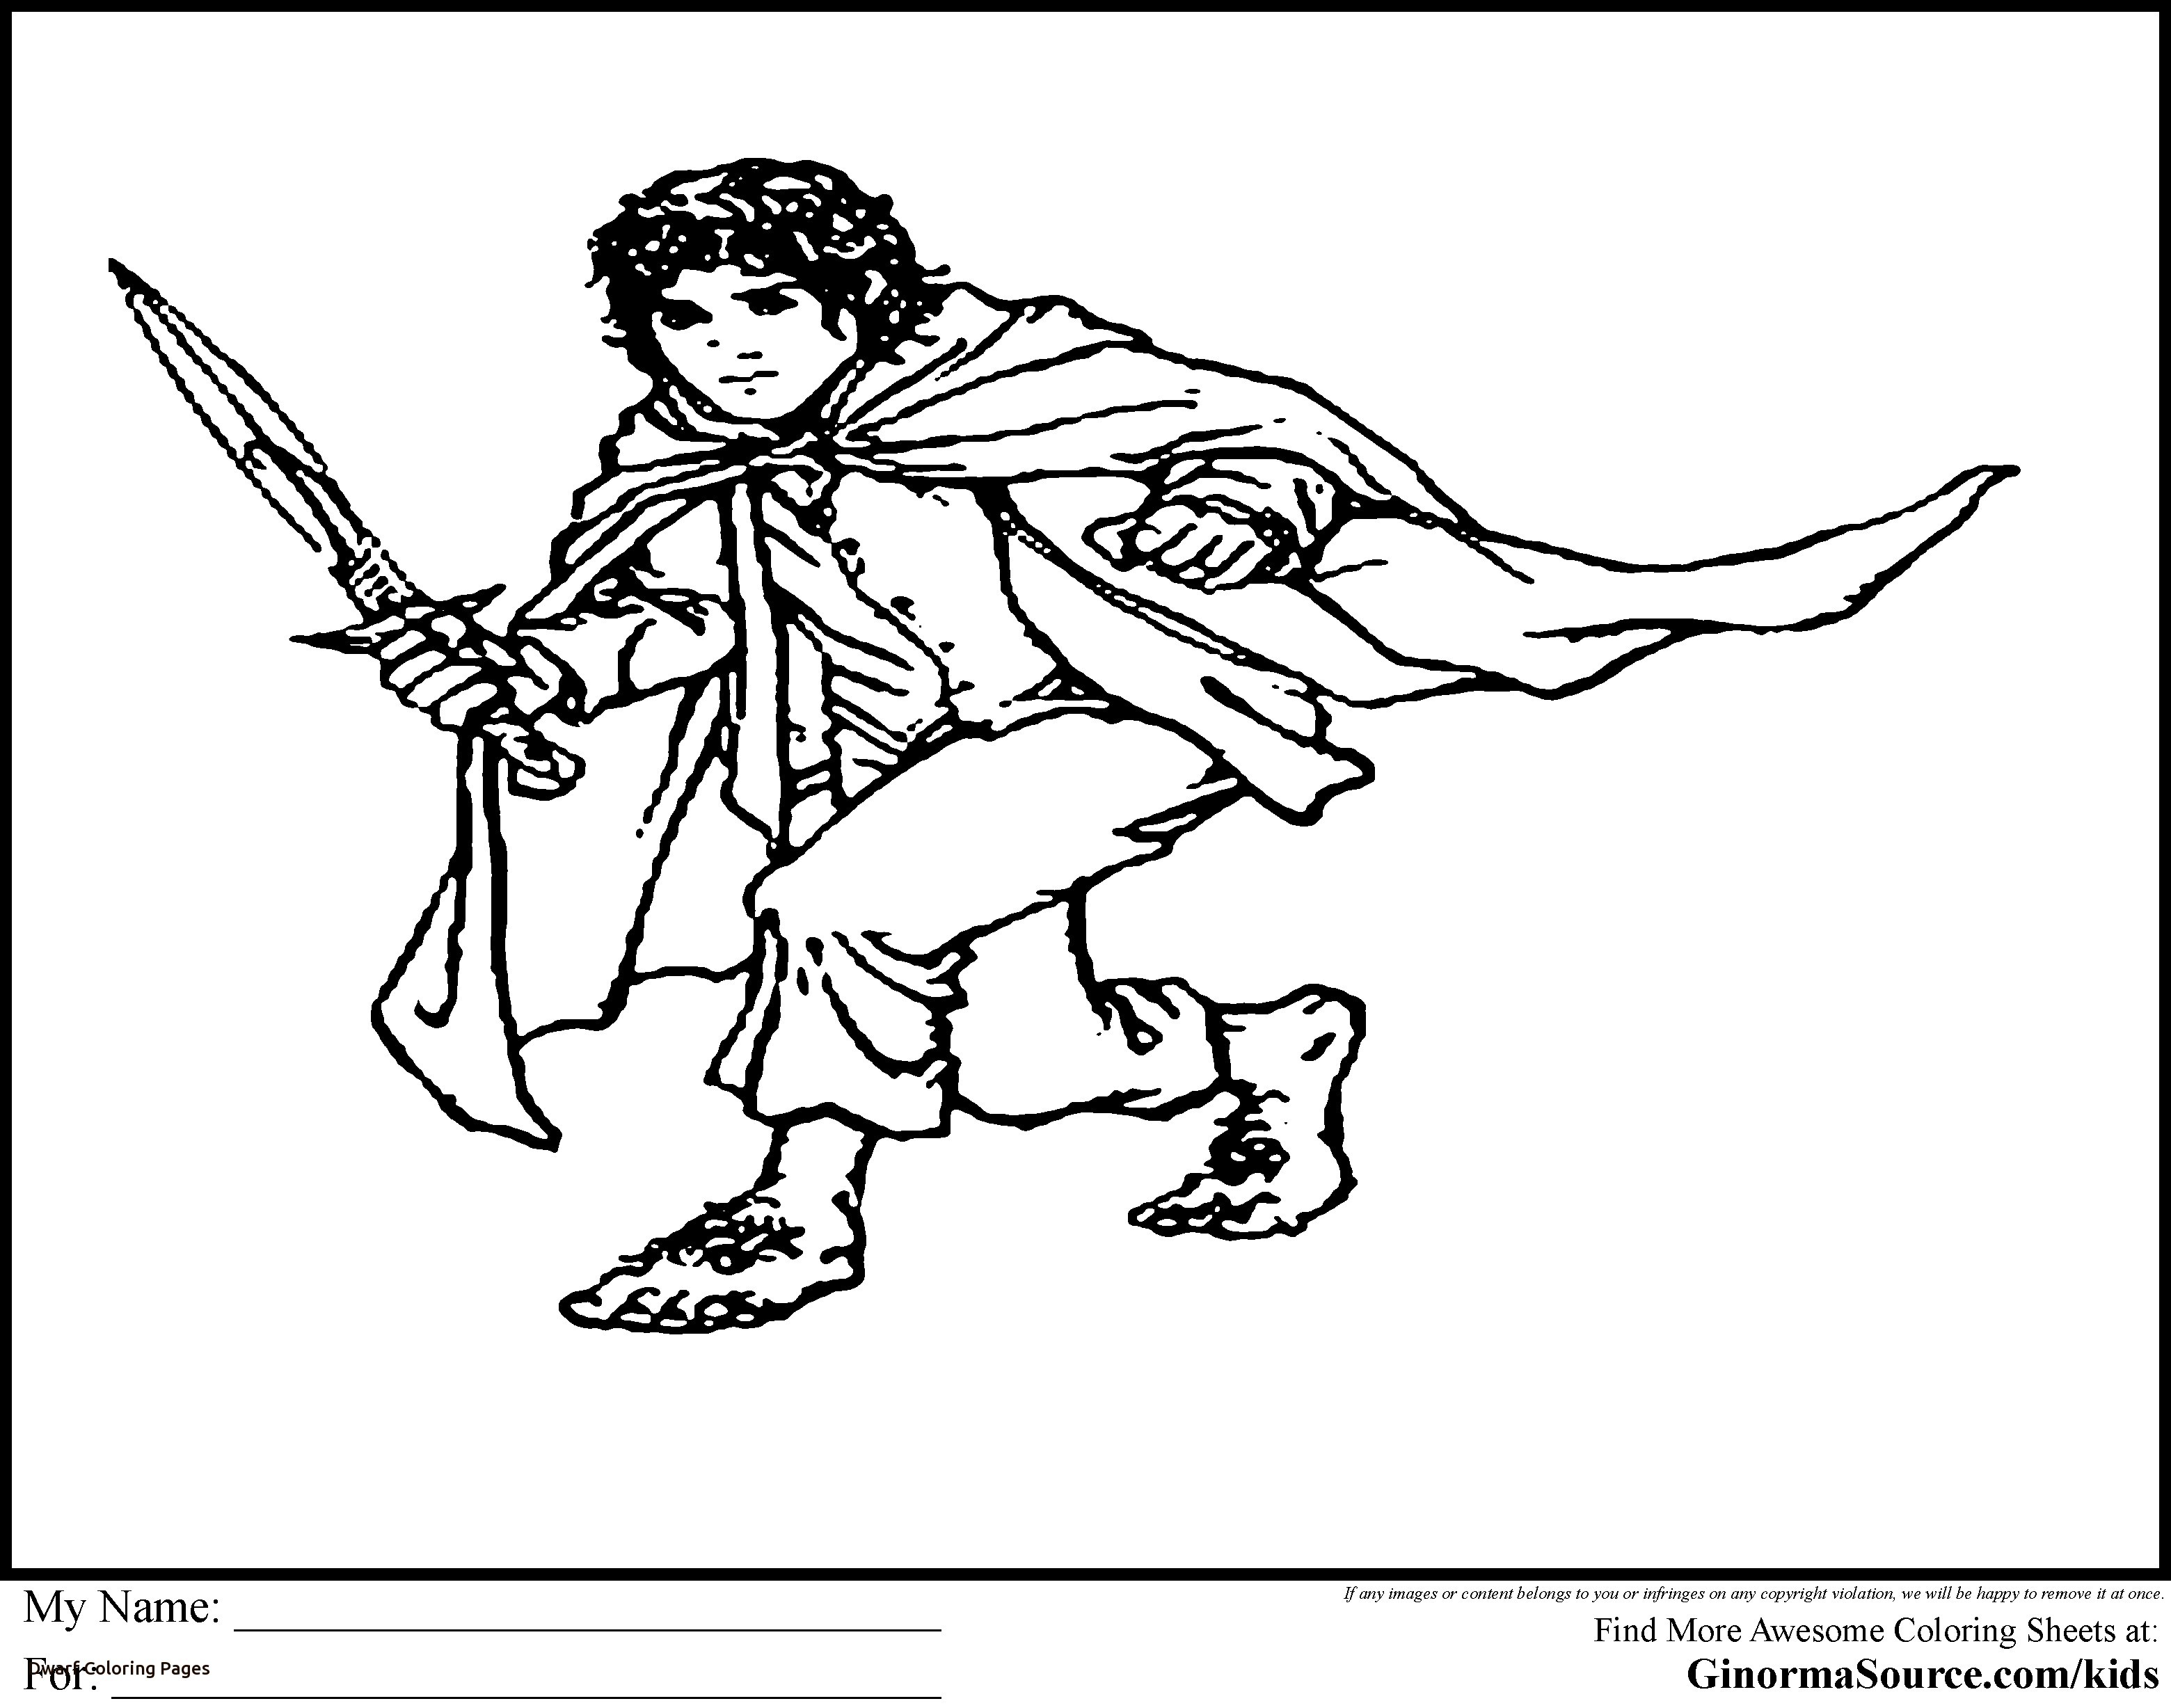 3120x2455 Astounding Lego The Hobbit Printable Coloring Pages